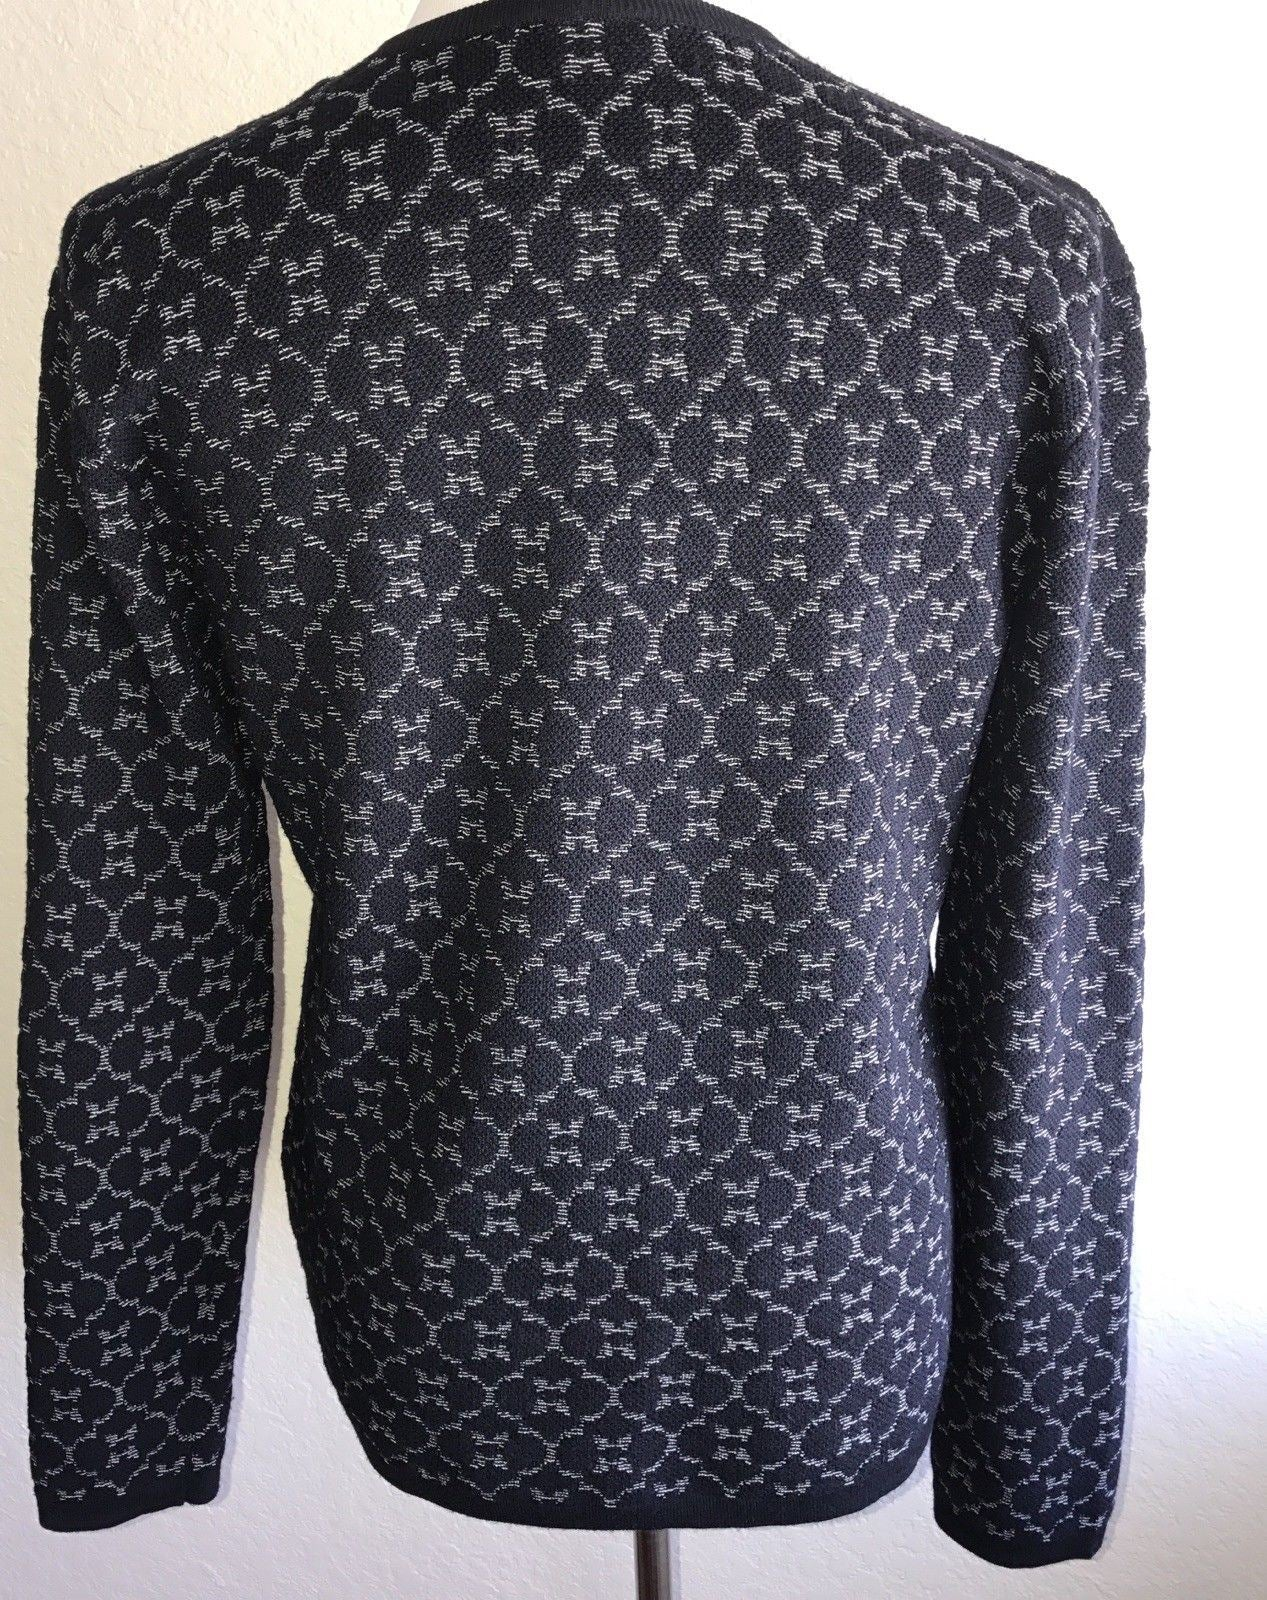 NWT $1895 Giorgio Armani  Knitwear Blue Long Sleeves Sweater 50 EU Italy 3YSM19